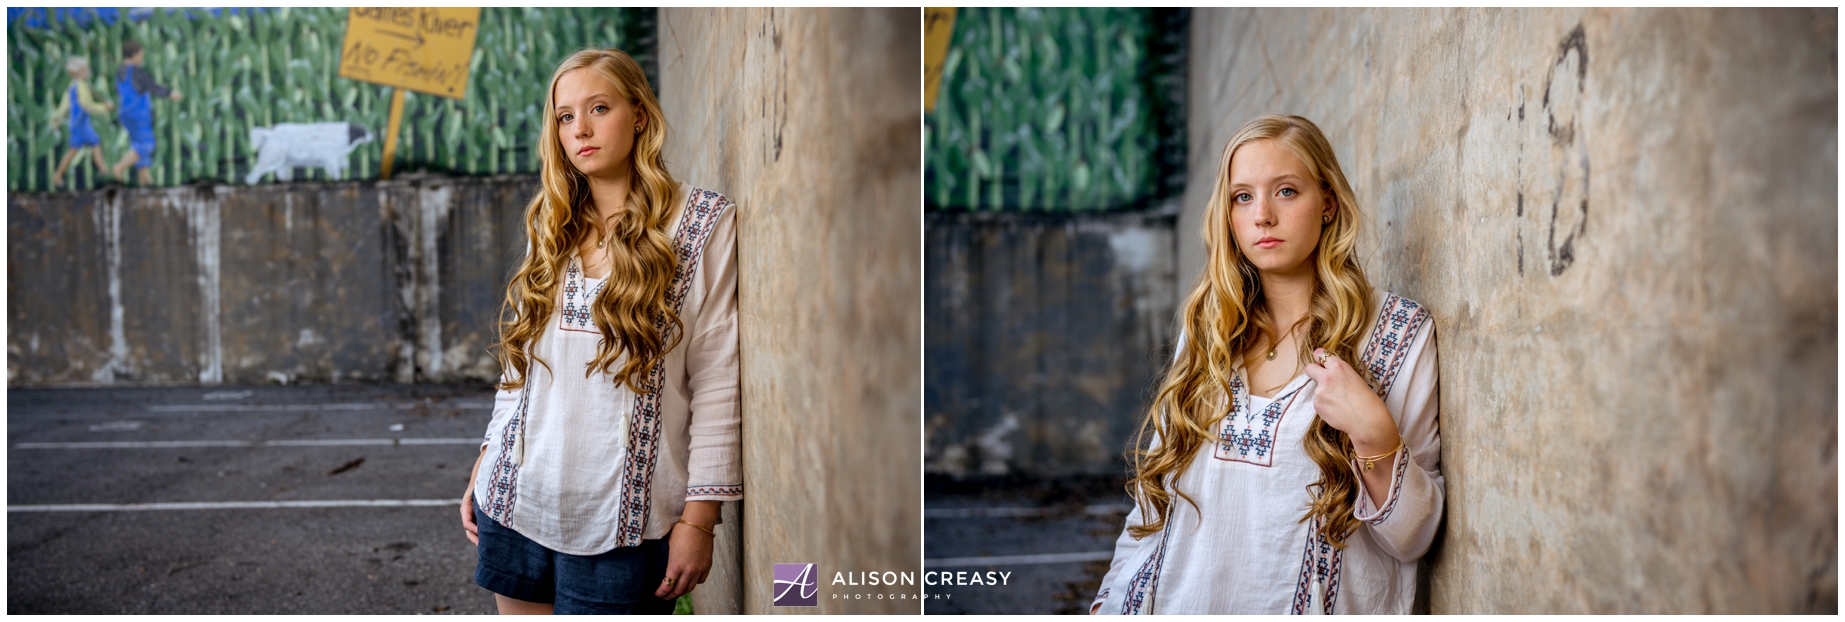 Alison-Creasy-Photography-Lynchburg-VA-Photographer_0979.jpg